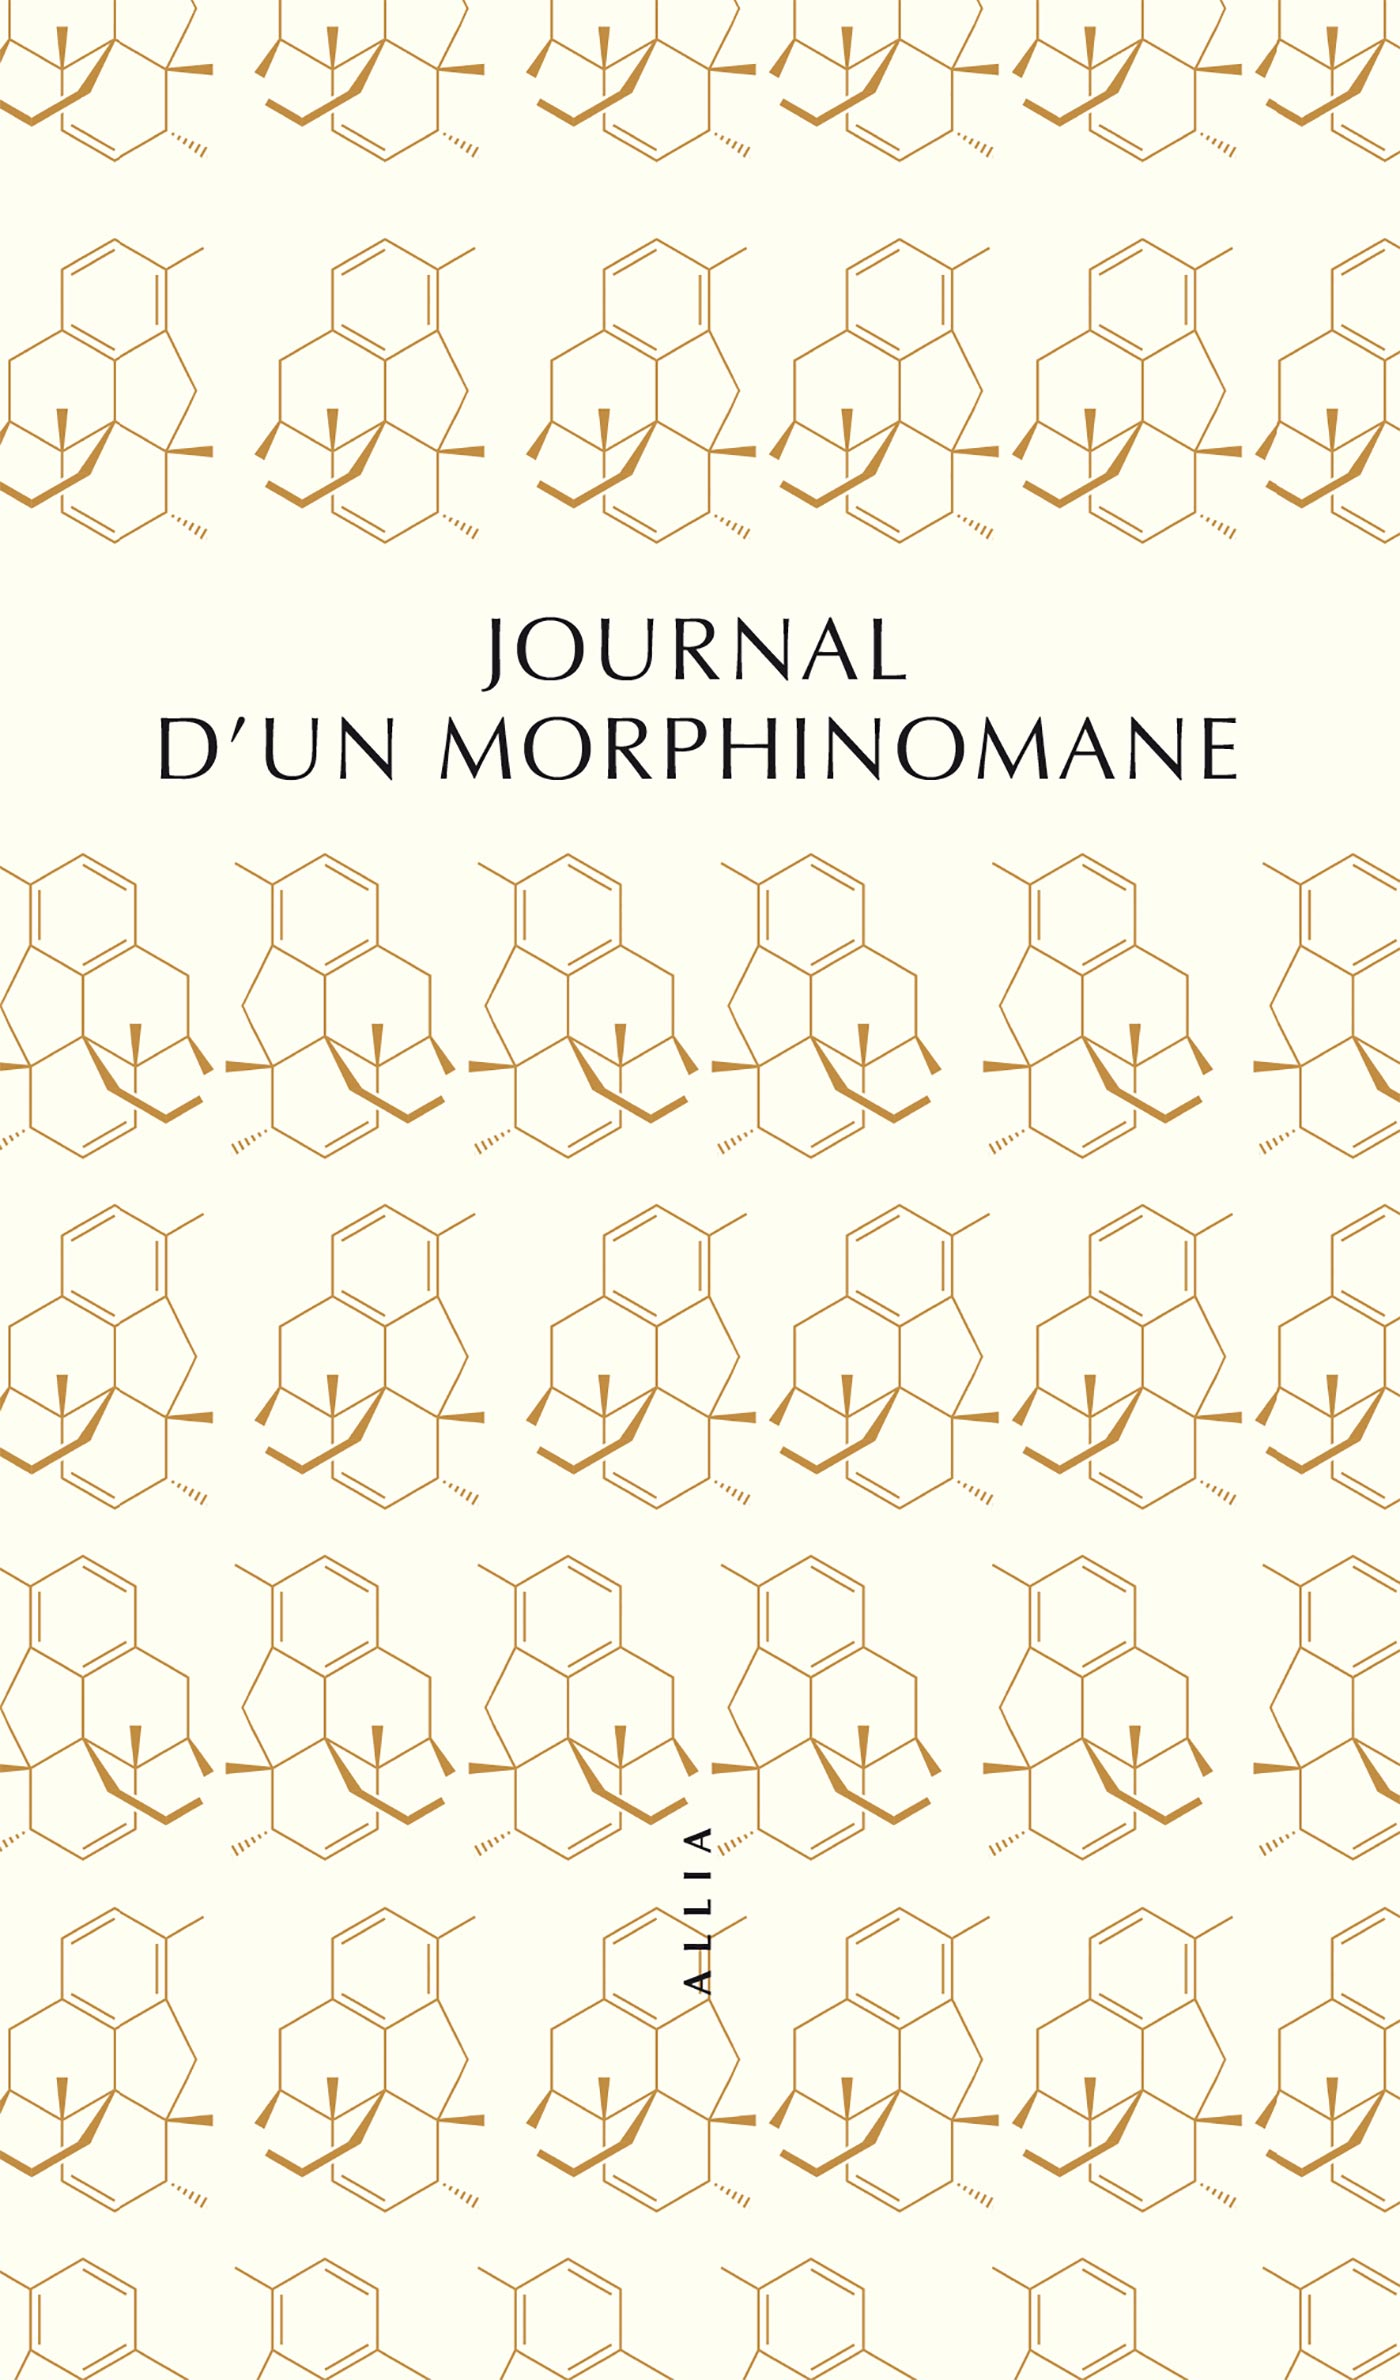 Journal d'un morphinomane